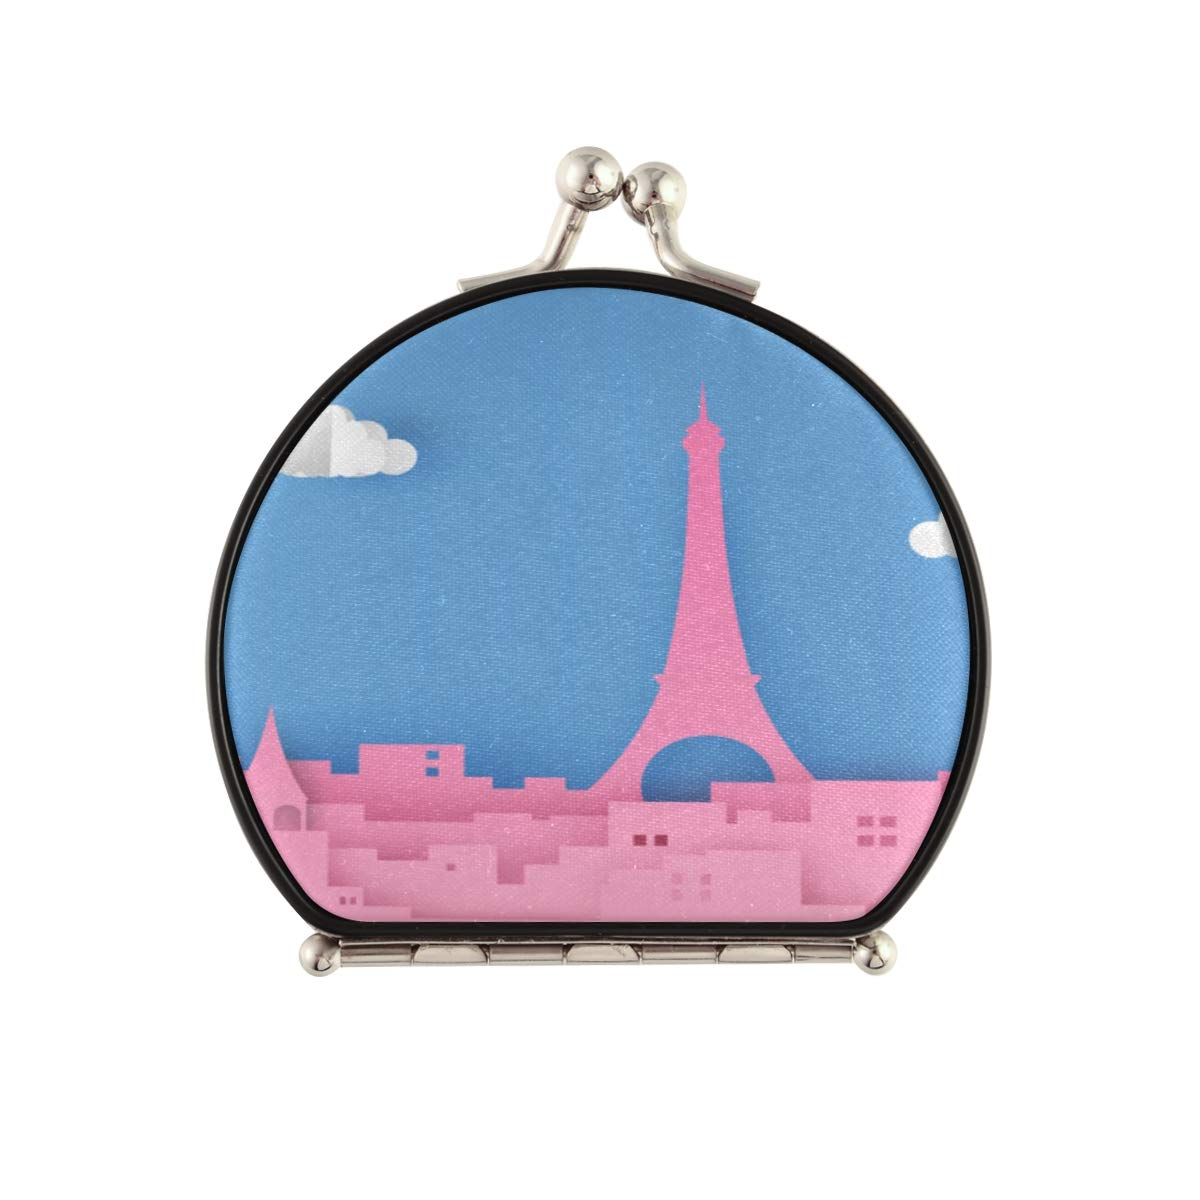 Magnifying Max 88% OFF Compact Cosmetic Max 76% OFF Mirror Paris Fran Scene Capital City